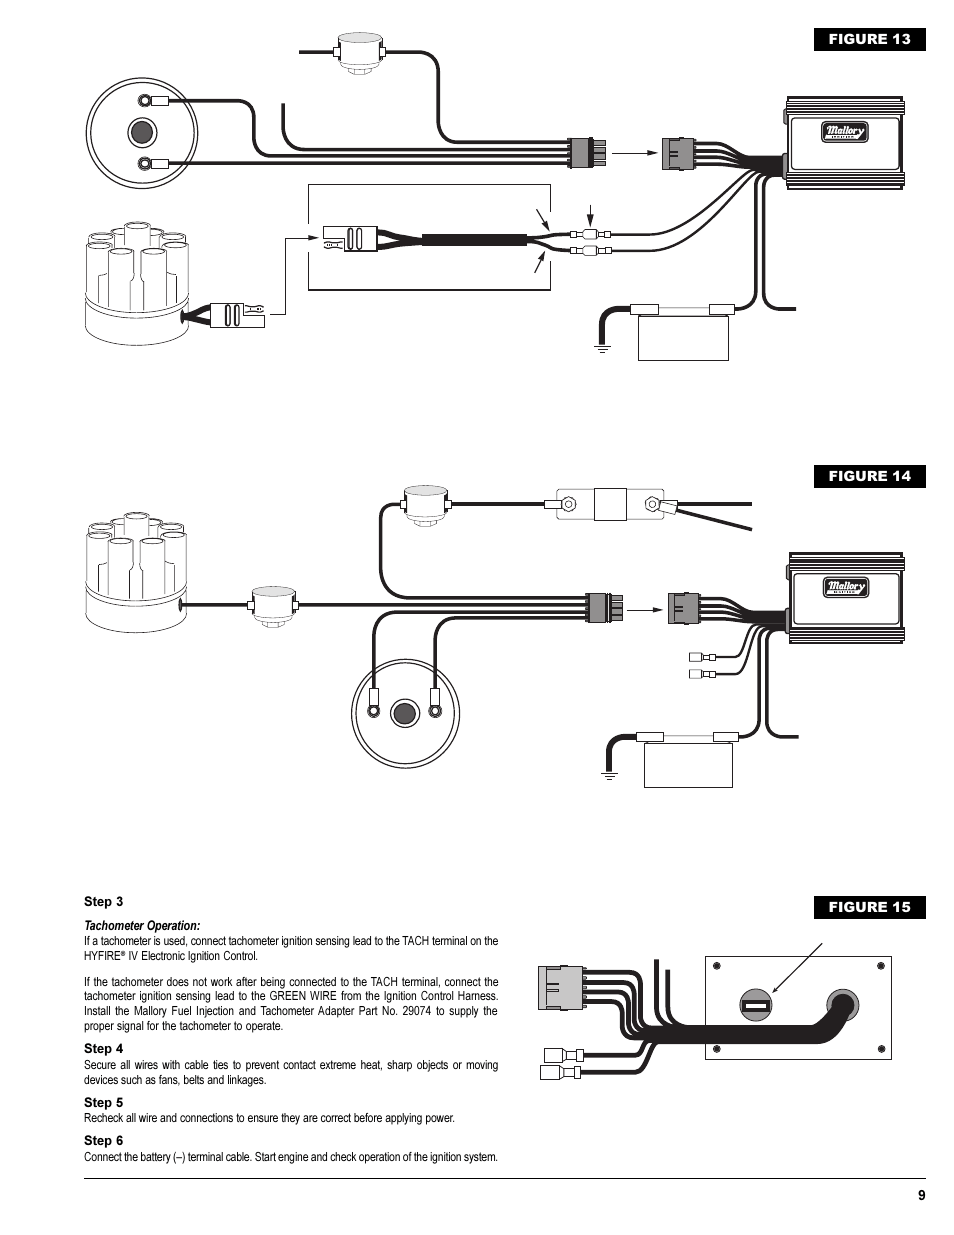 Mallory Ignition Systems Wiring Diagrams | Best Wiring Liry